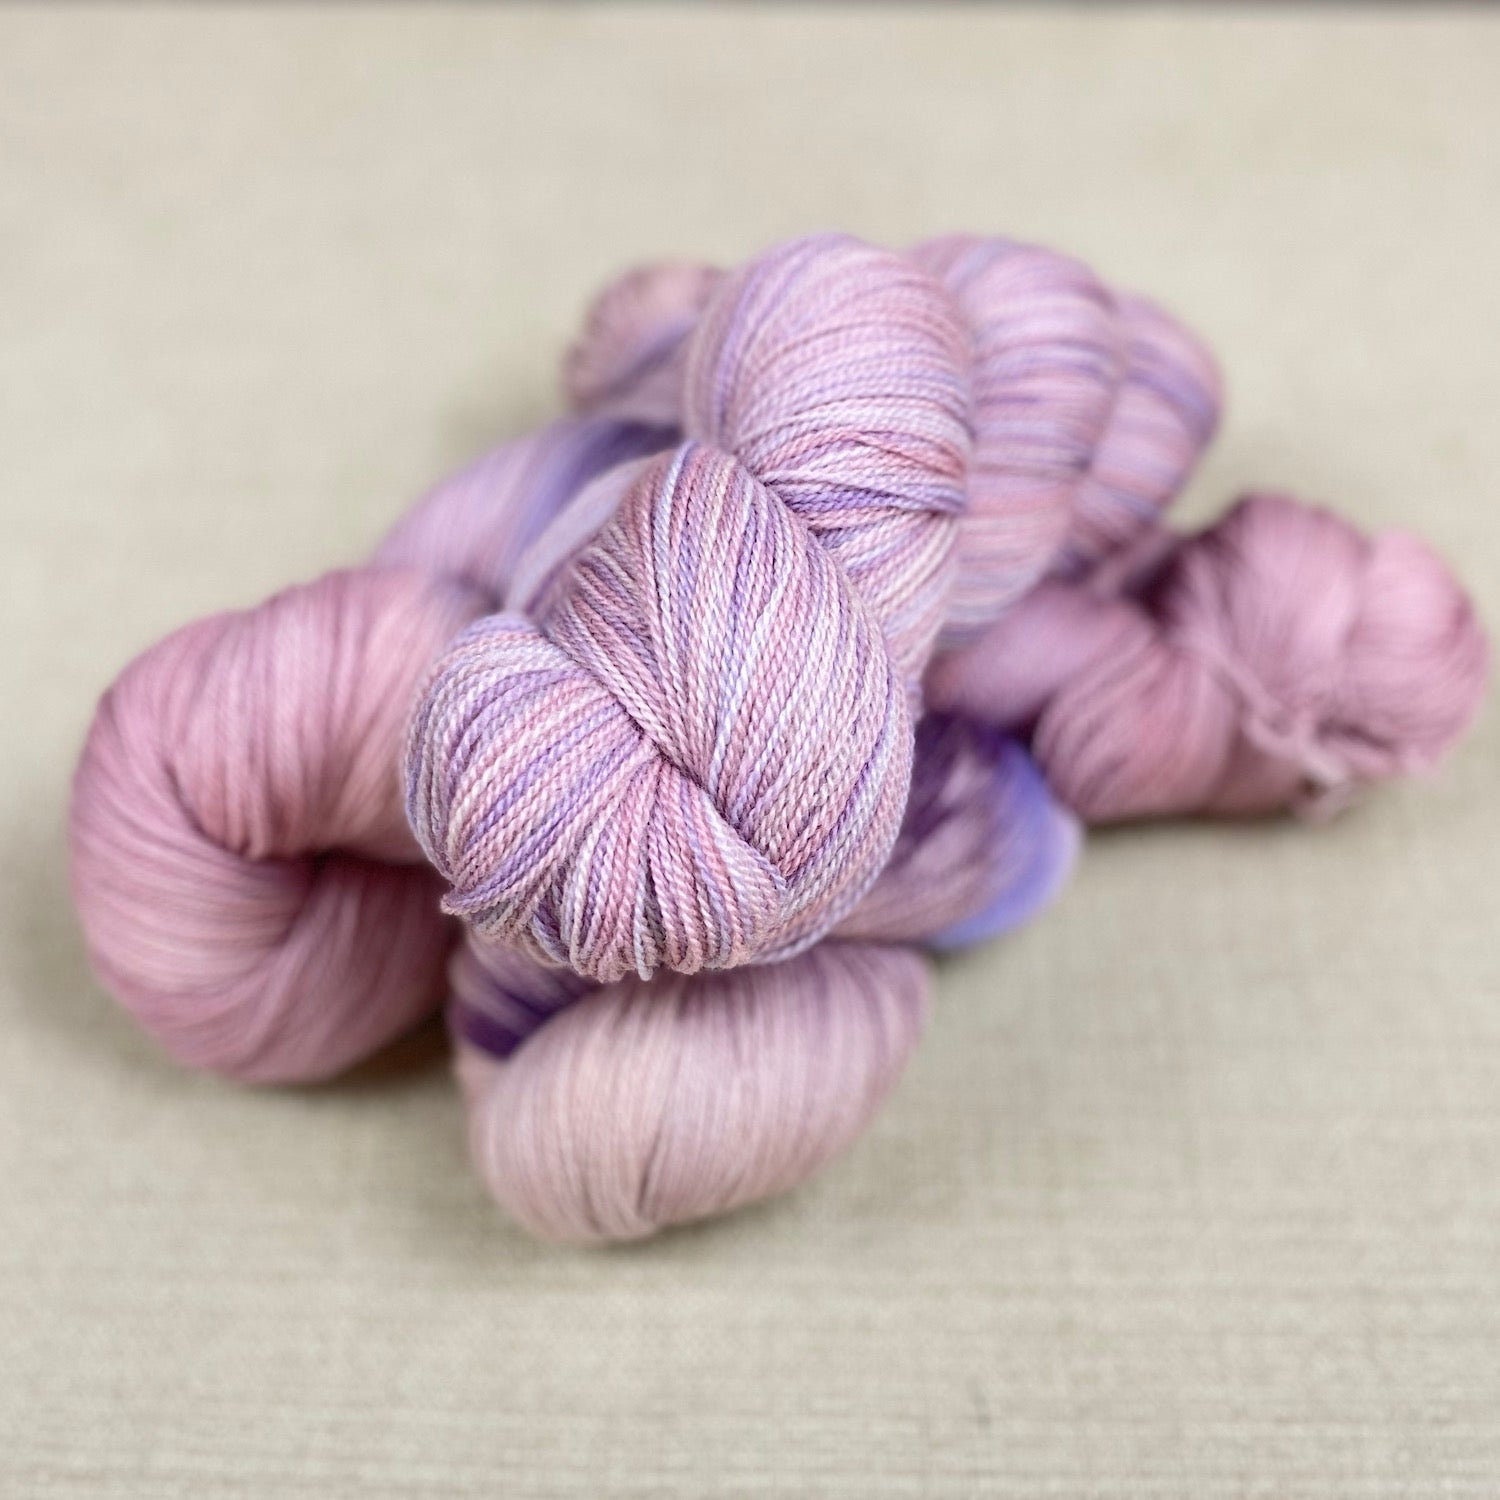 100g Organic Merino Lace Weight -  Peony & Heather